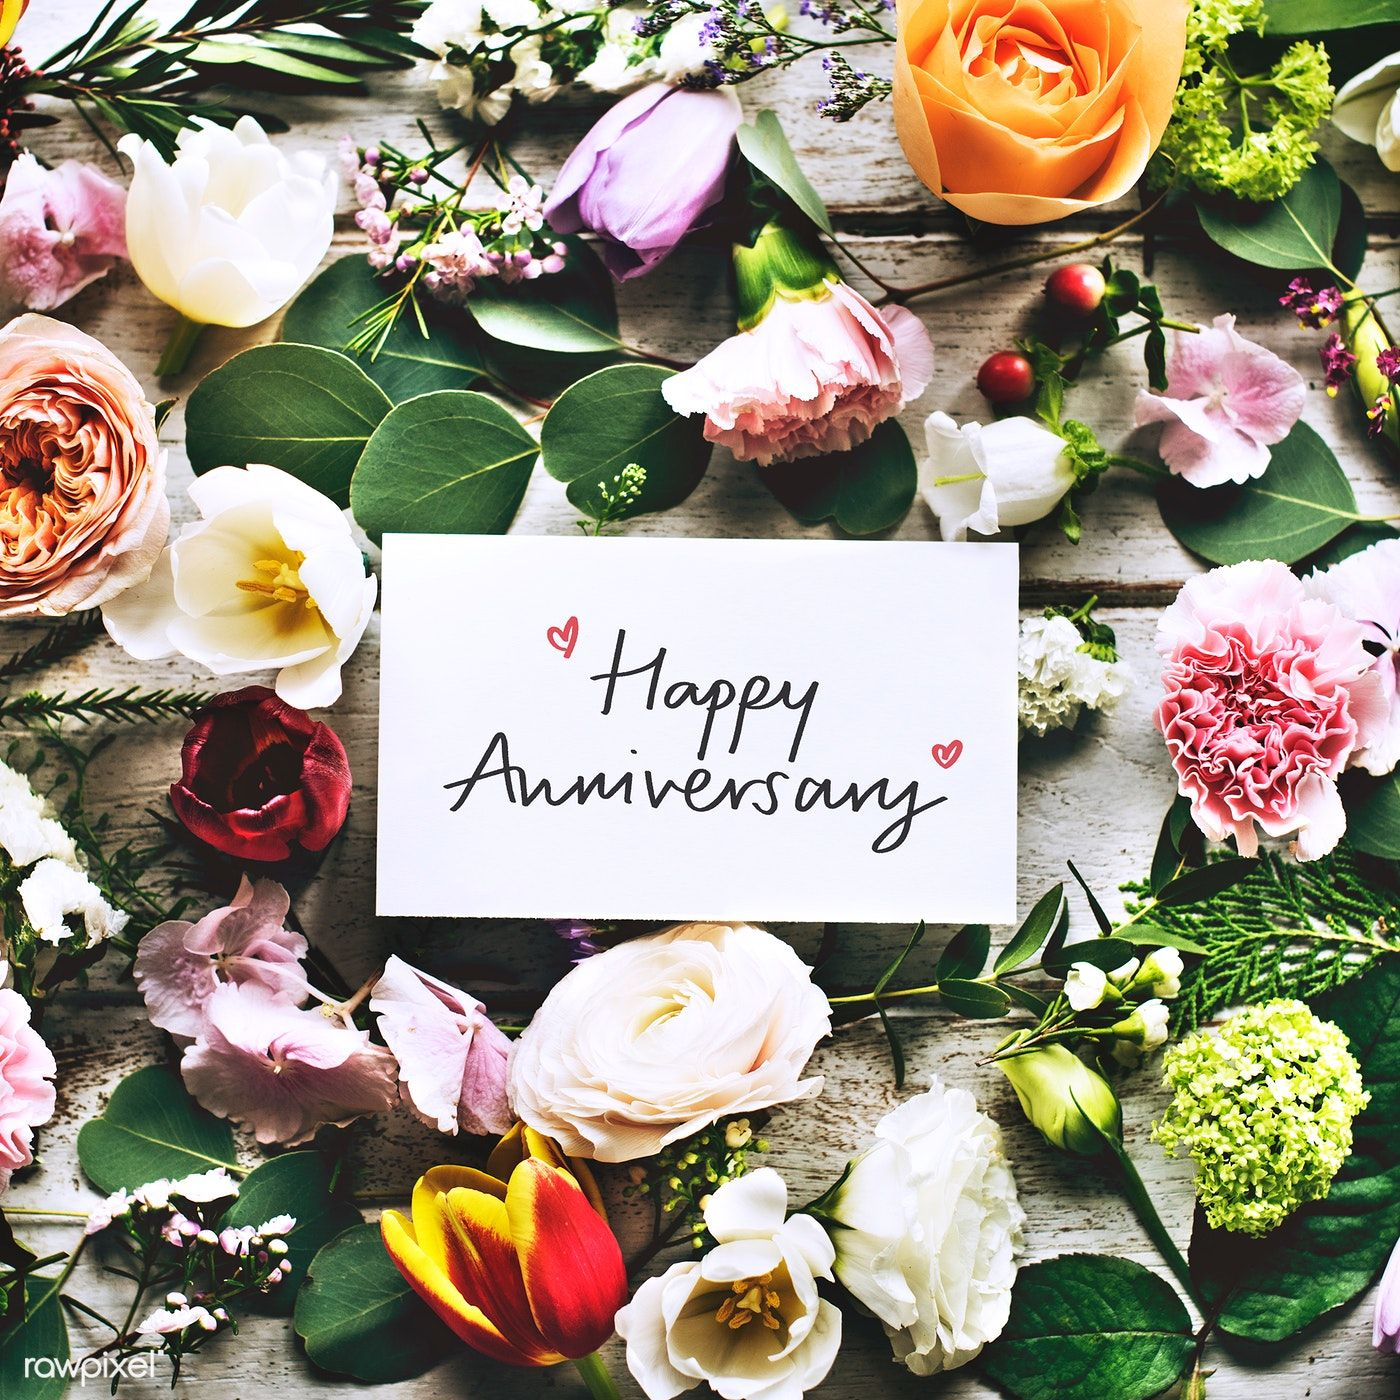 Download Premium Image Of Happy Anniversary Card And Flowers 426819 Happy Anniversary Cards Happy Valentines Day Card Happy Marriage Anniversary